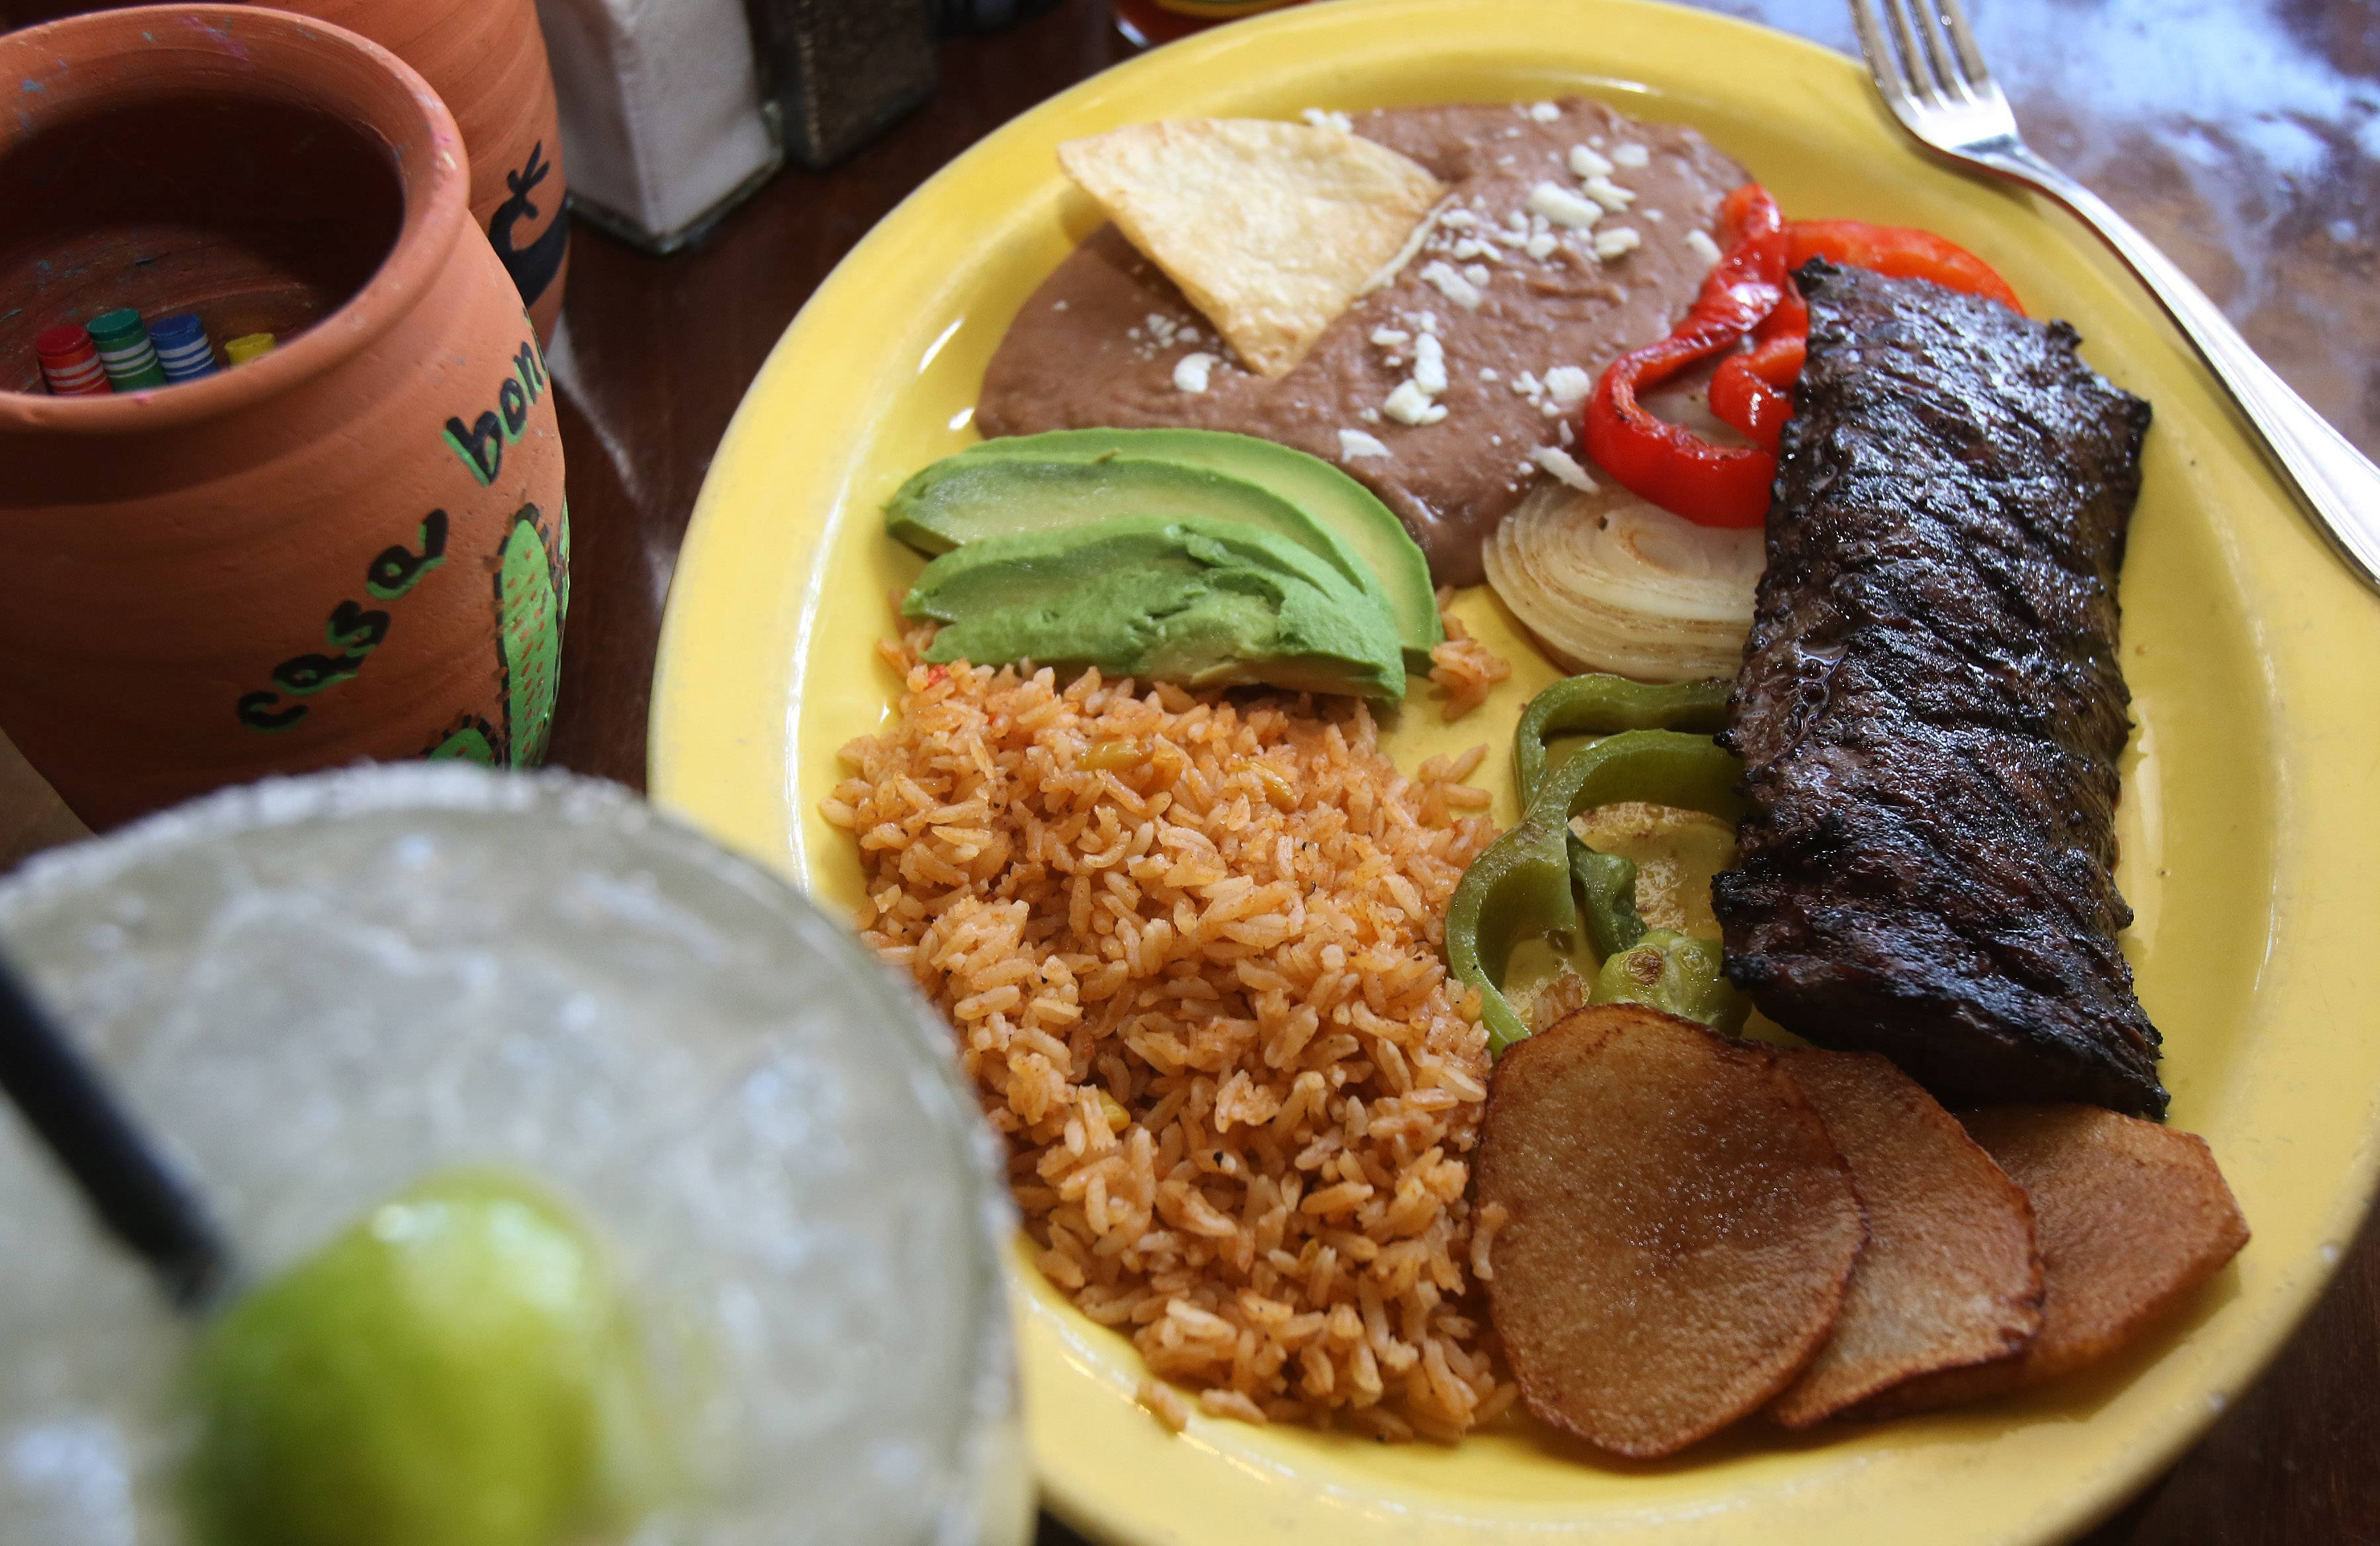 Casa Bonita's carne asada comes with grilled onions, bell peppers, sliced potatoes, beans and rice.